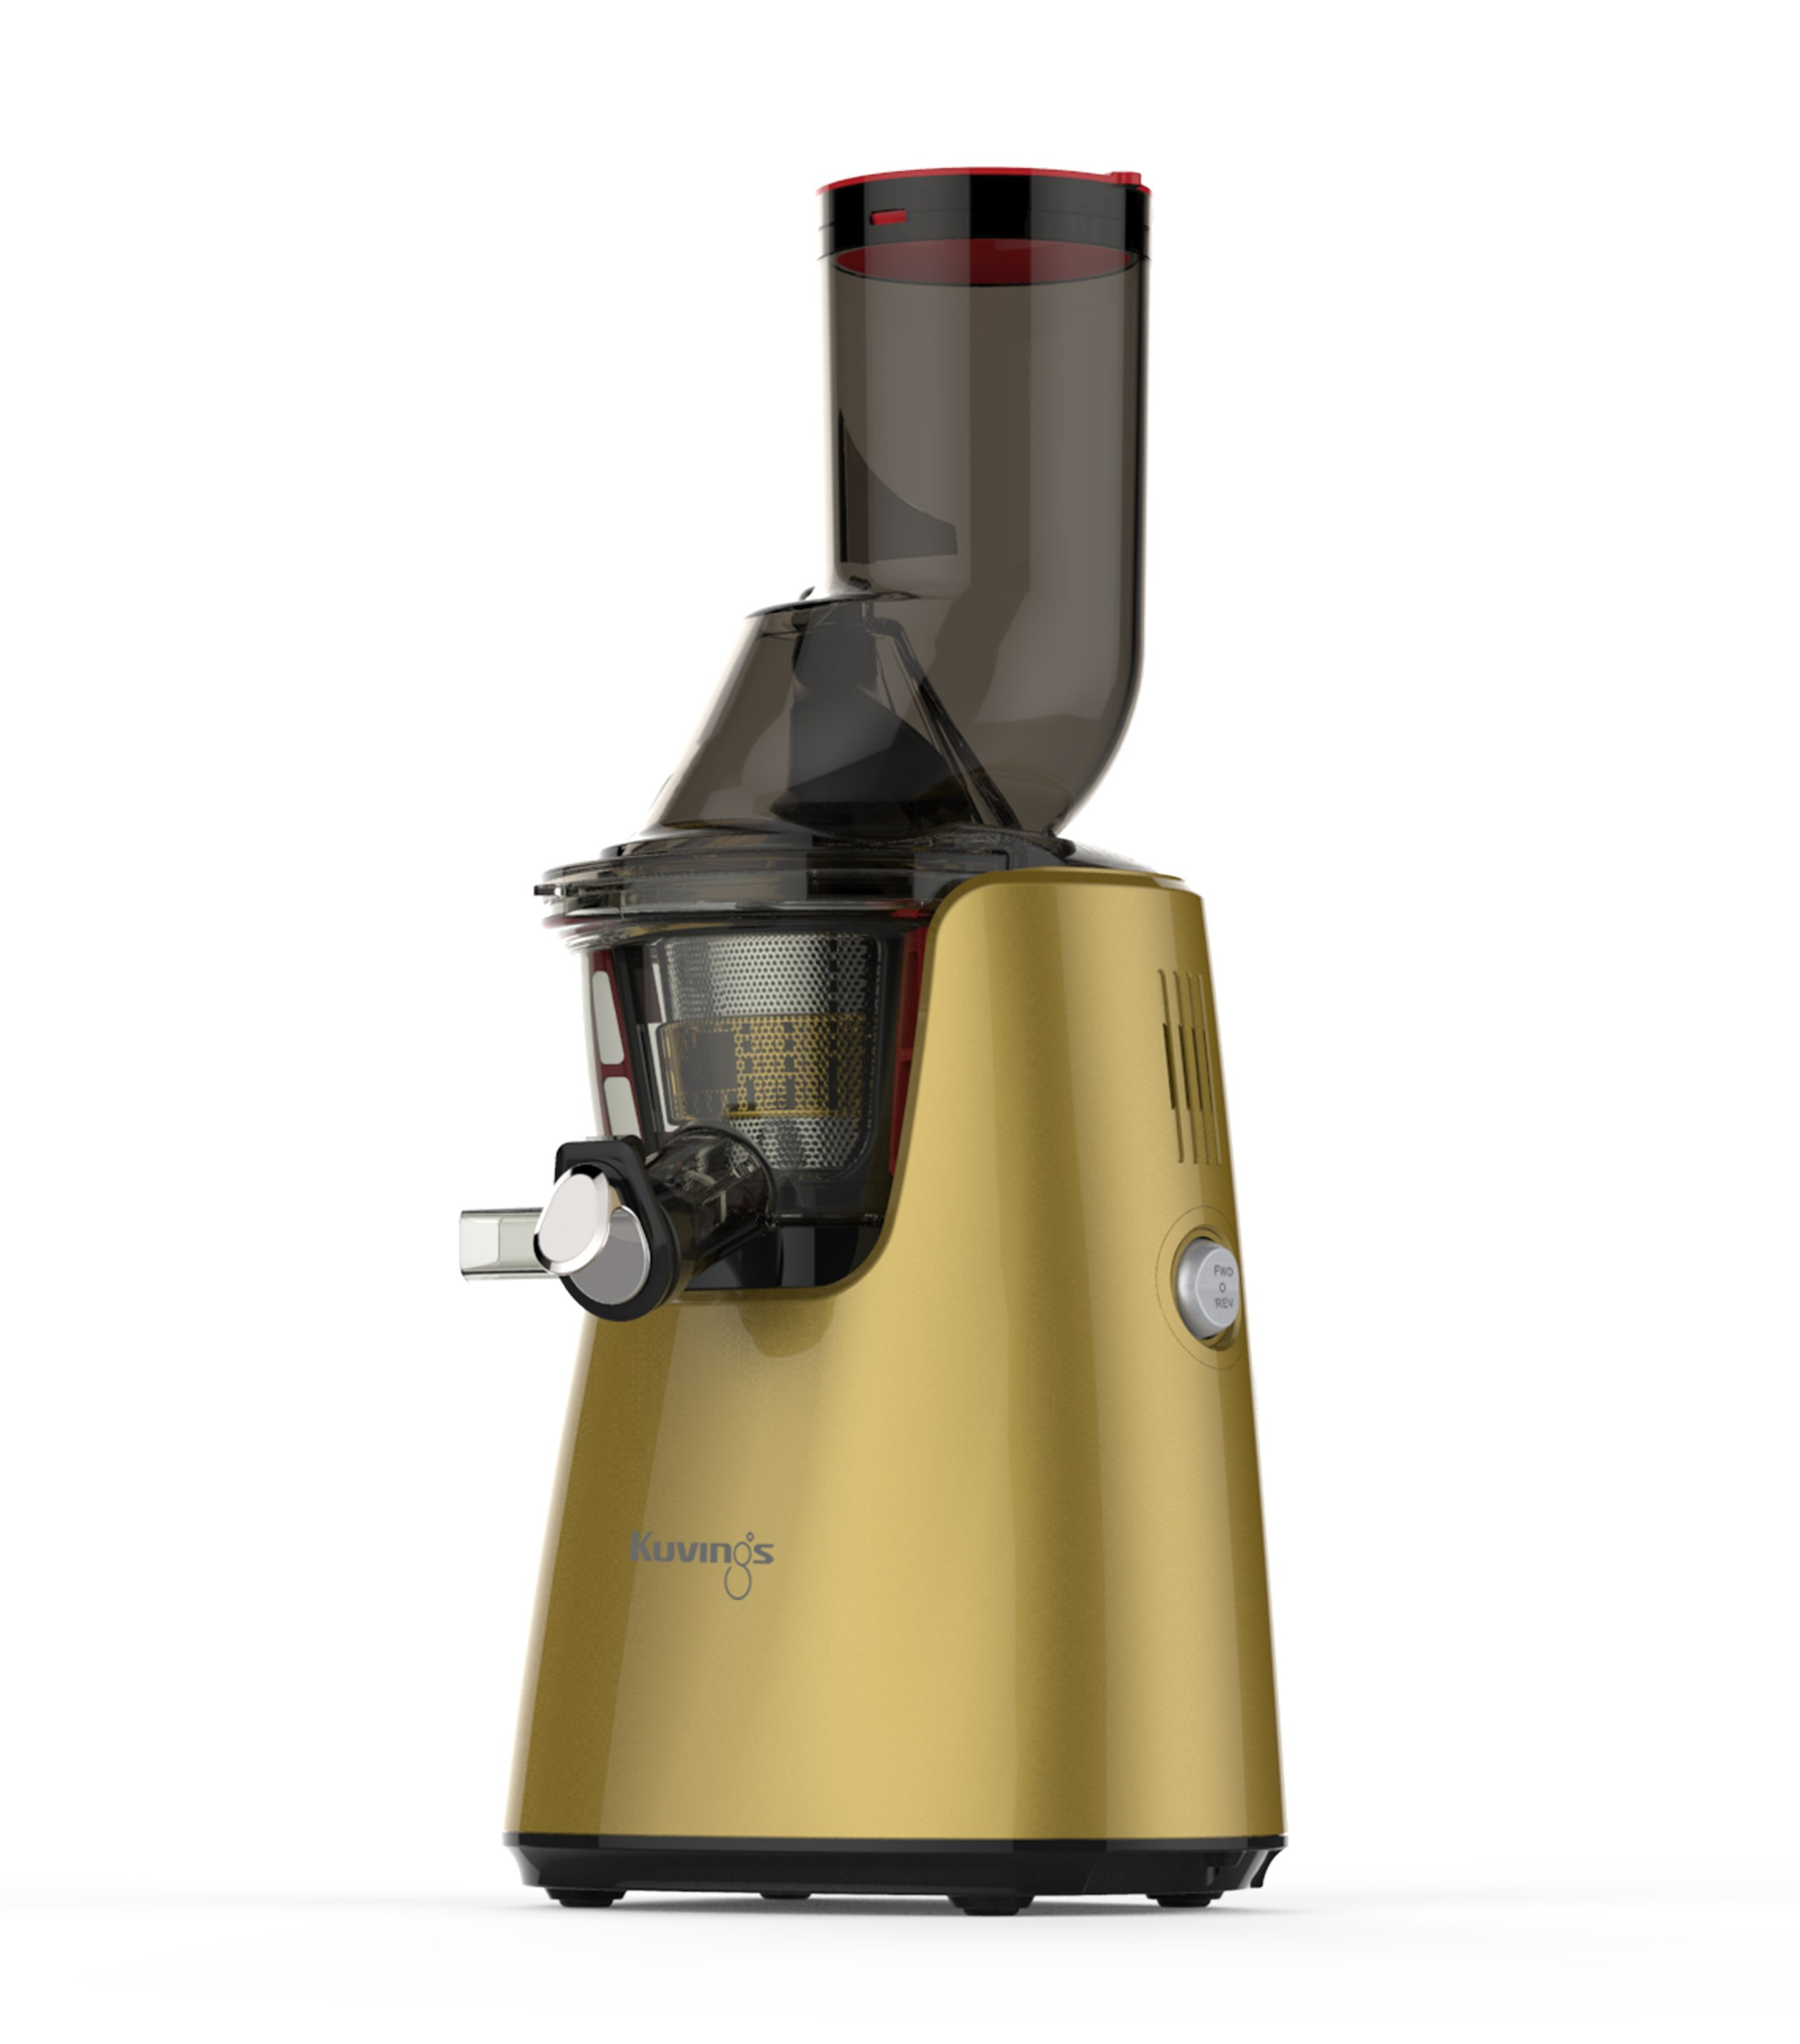 Kuvings Whole Juicer Parts : Kuvings C7000 Gold Professional Cold Pressed Juicer